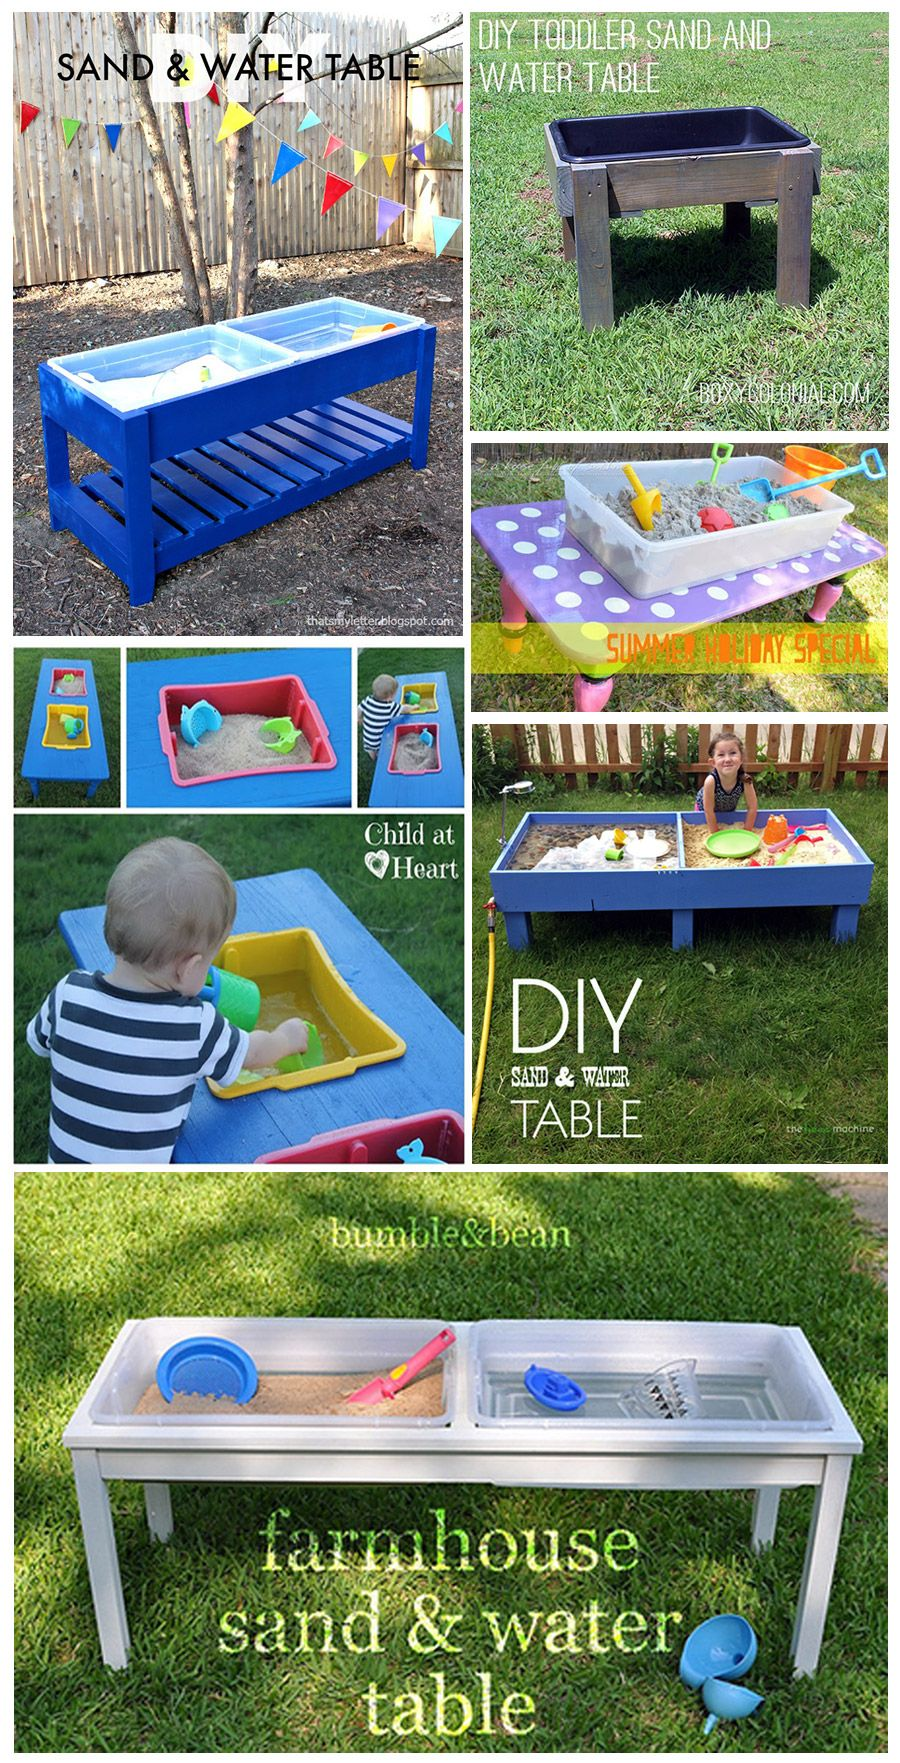 How To Make A Sand And Water Table Sand And Water Table Water Table Diy Sand And Water